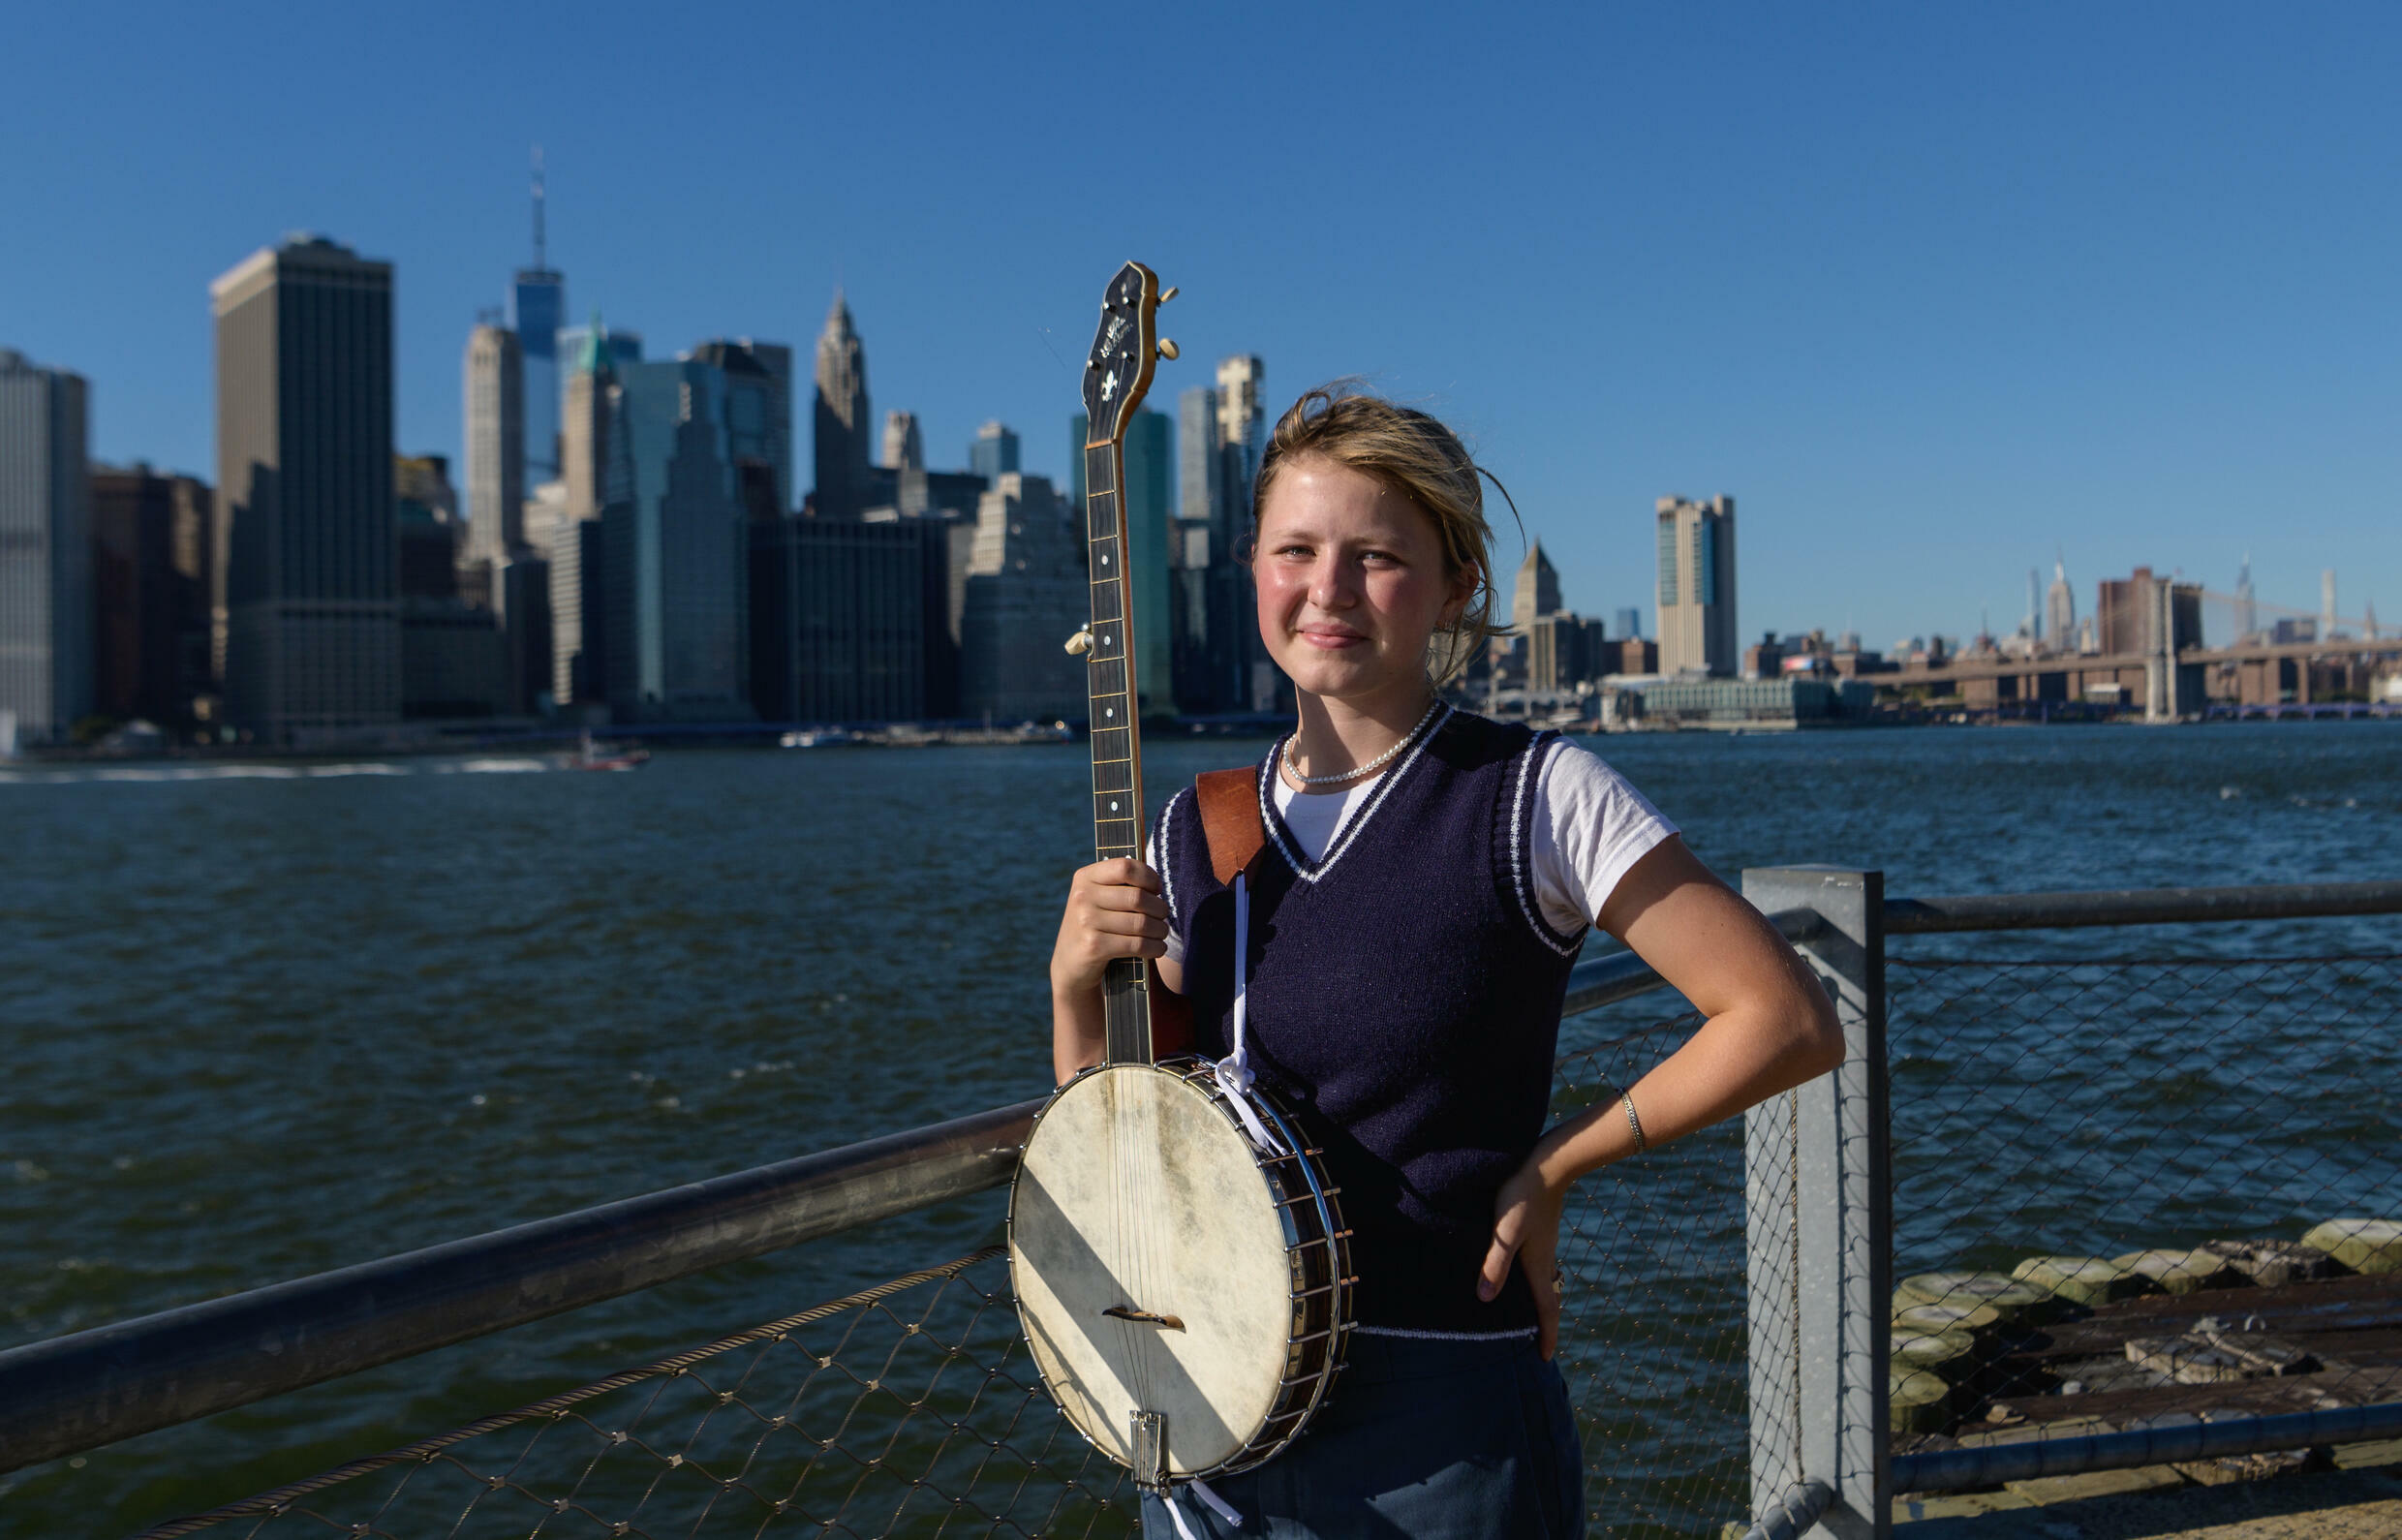 When her parents gave Nora Brown a ukulele for Christmas at the age of six, they never imagined she would become one of the rising stars of the bluegrass world.